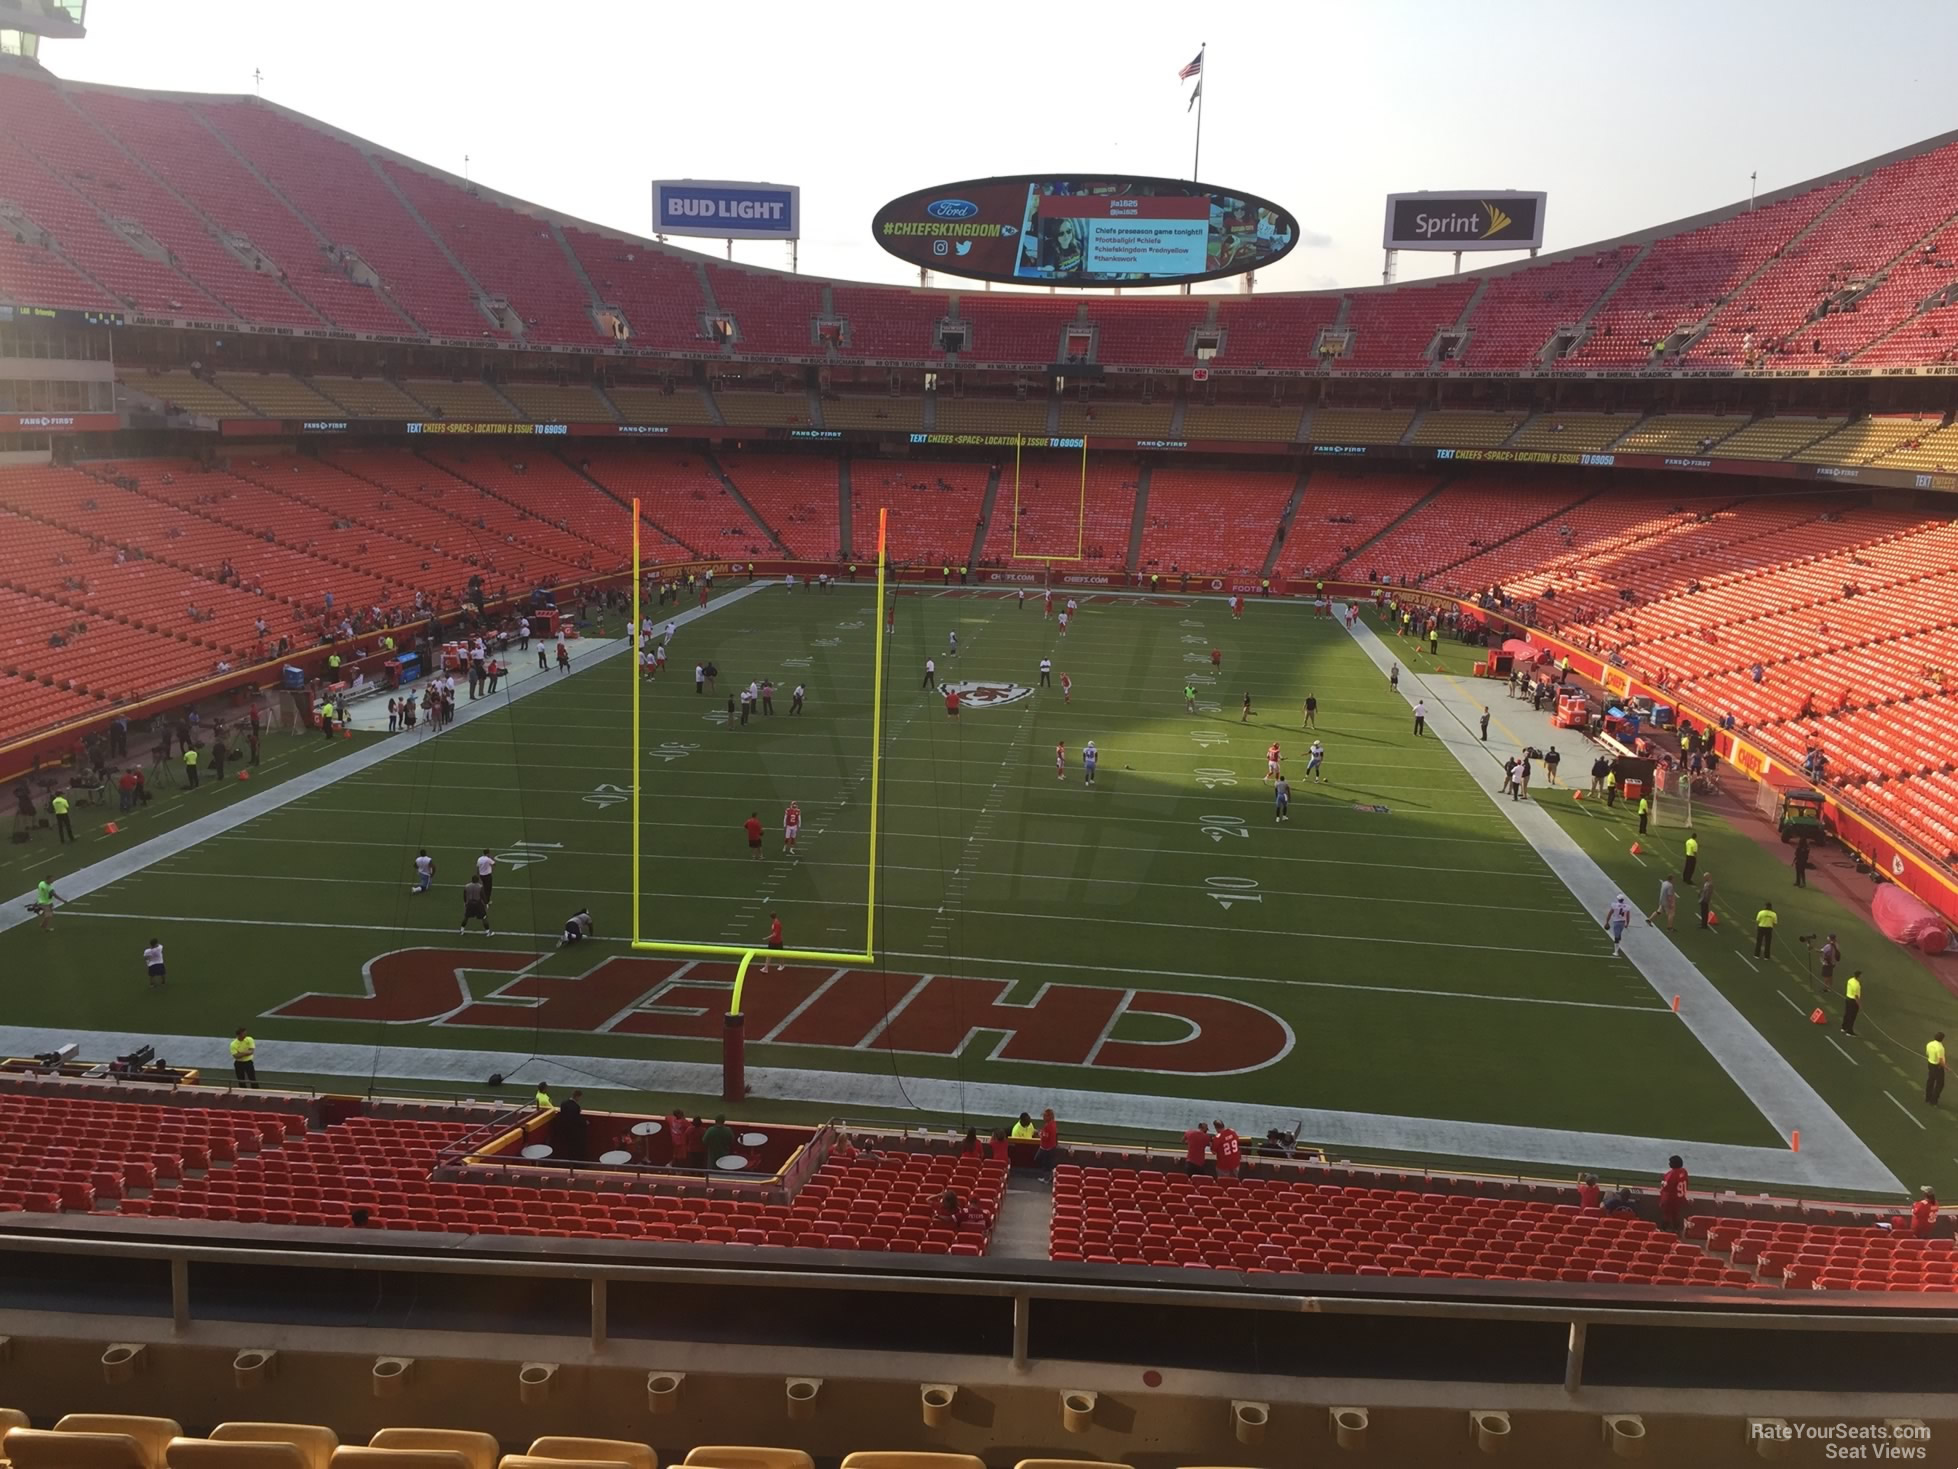 Seat View for Arrowhead Stadium Section 212, Row 7